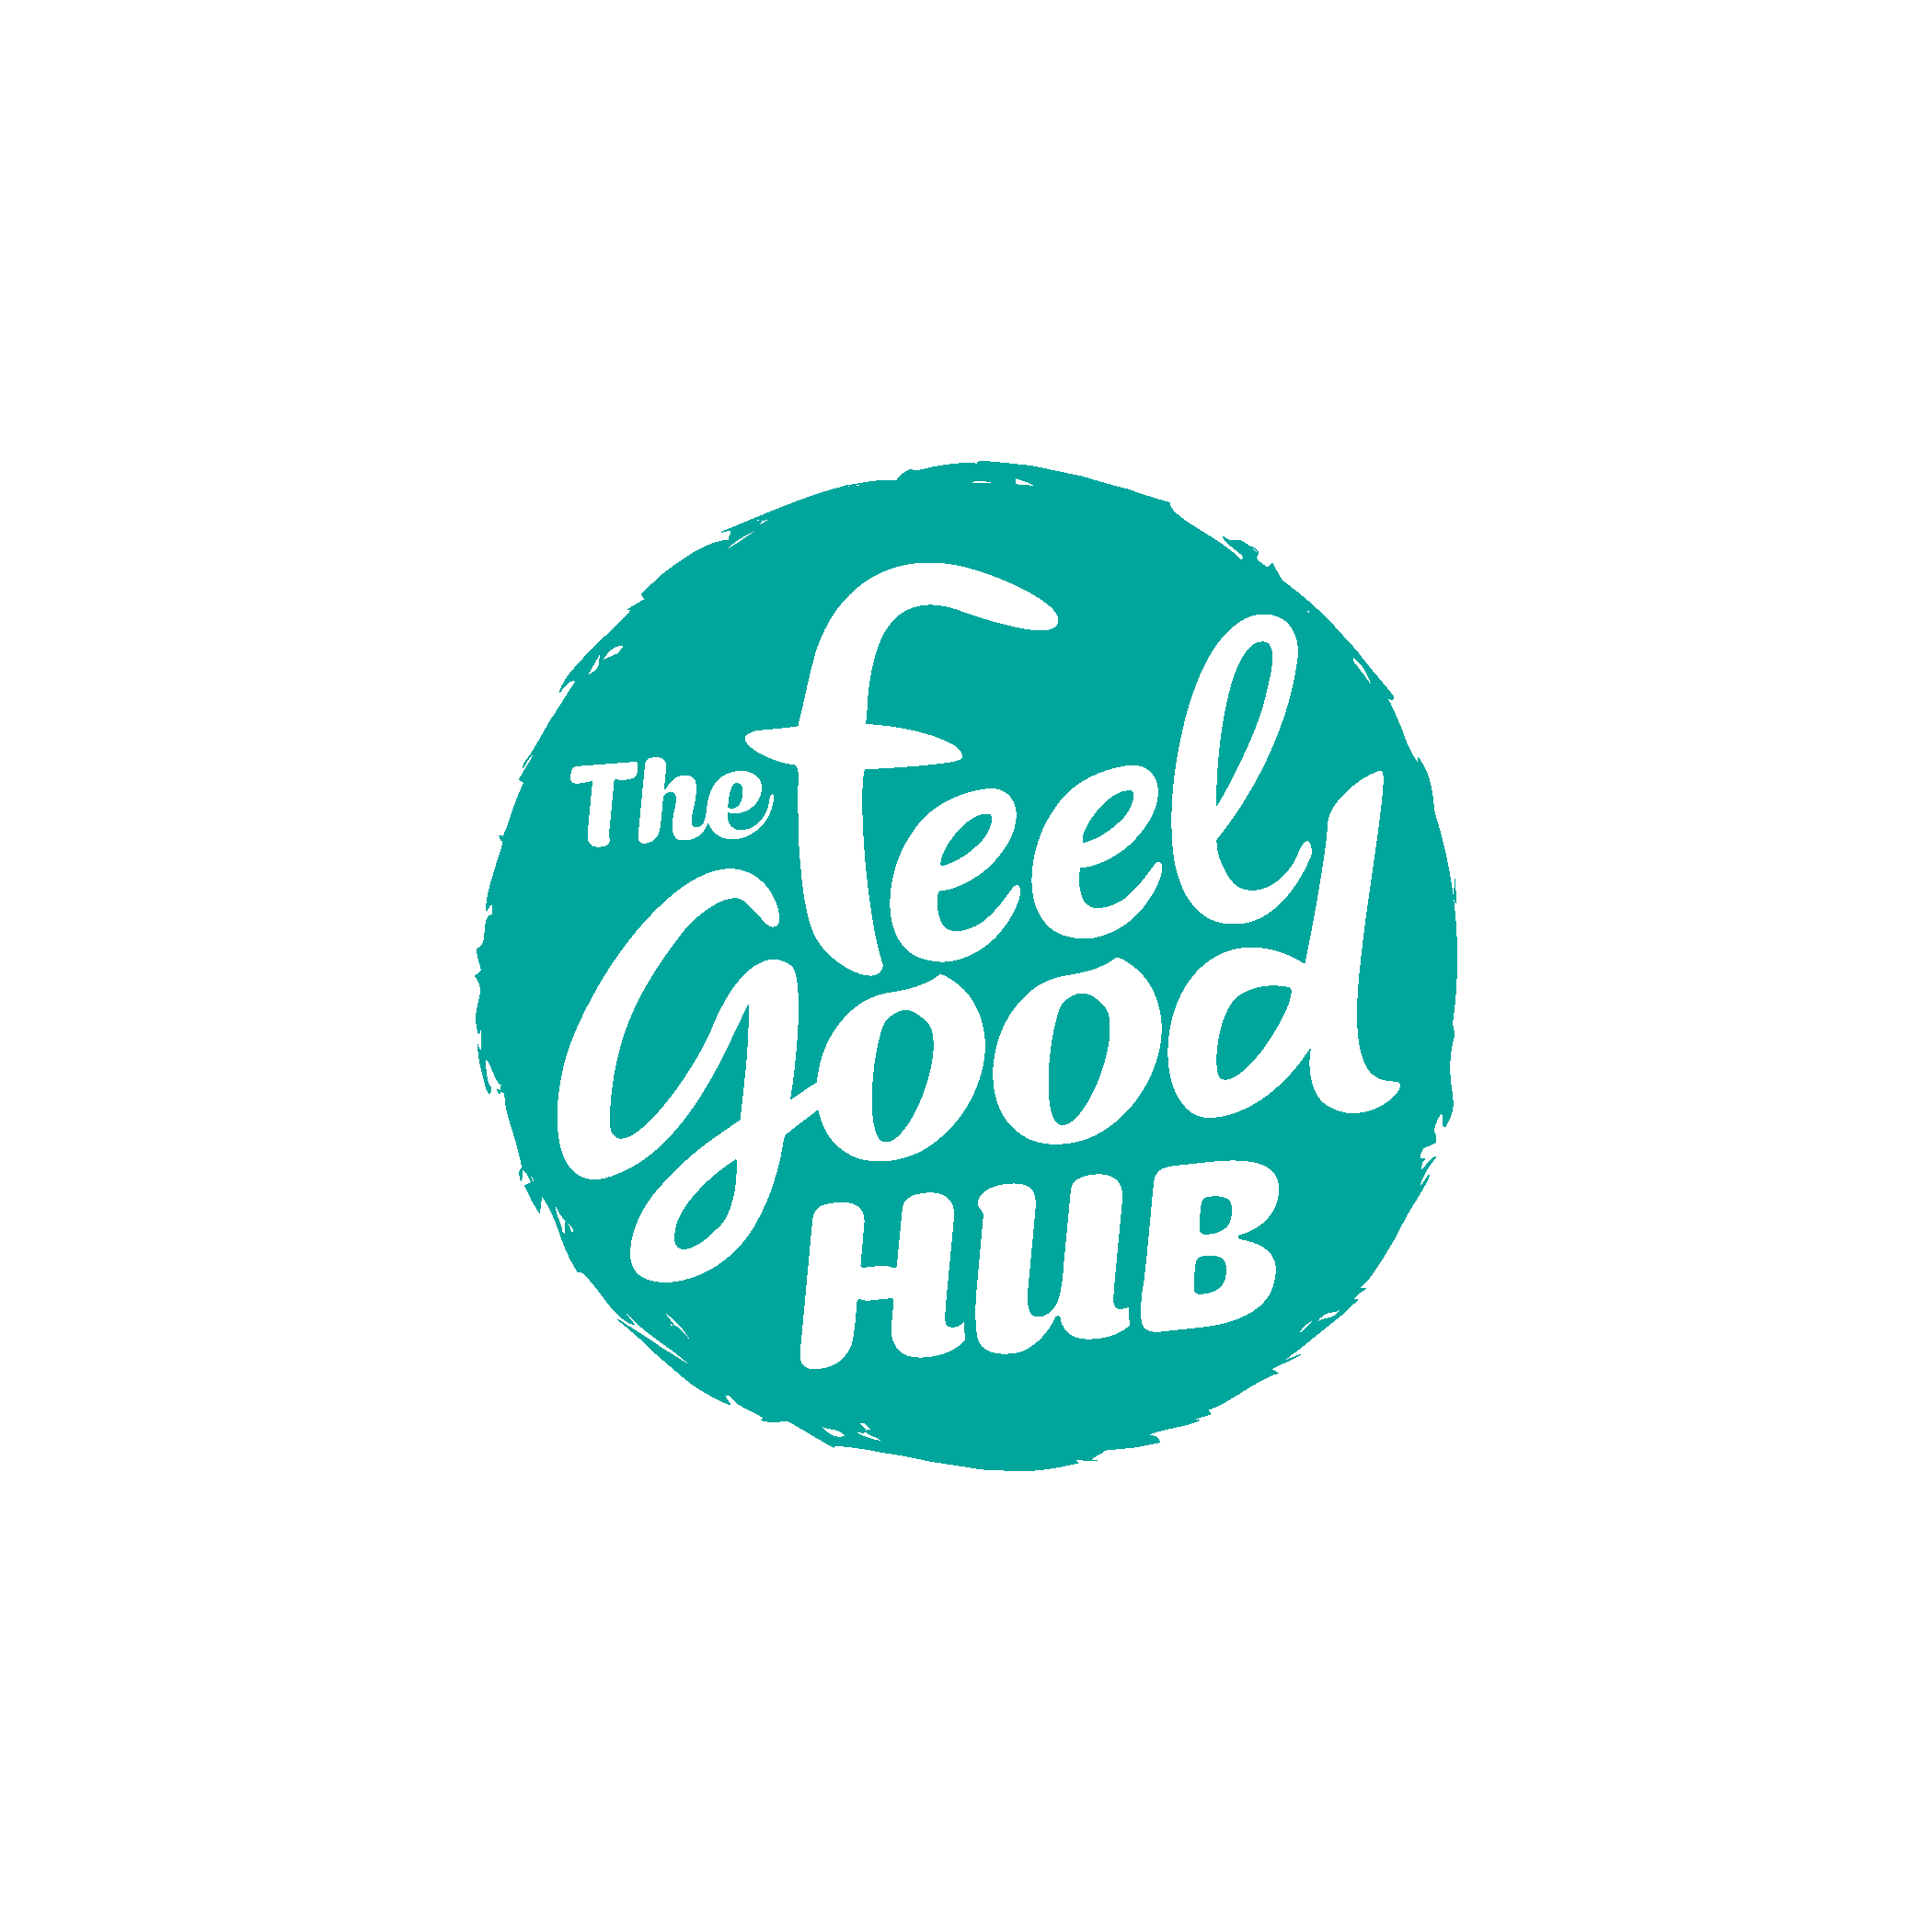 The Hub needs a new logo that makes people feel good!